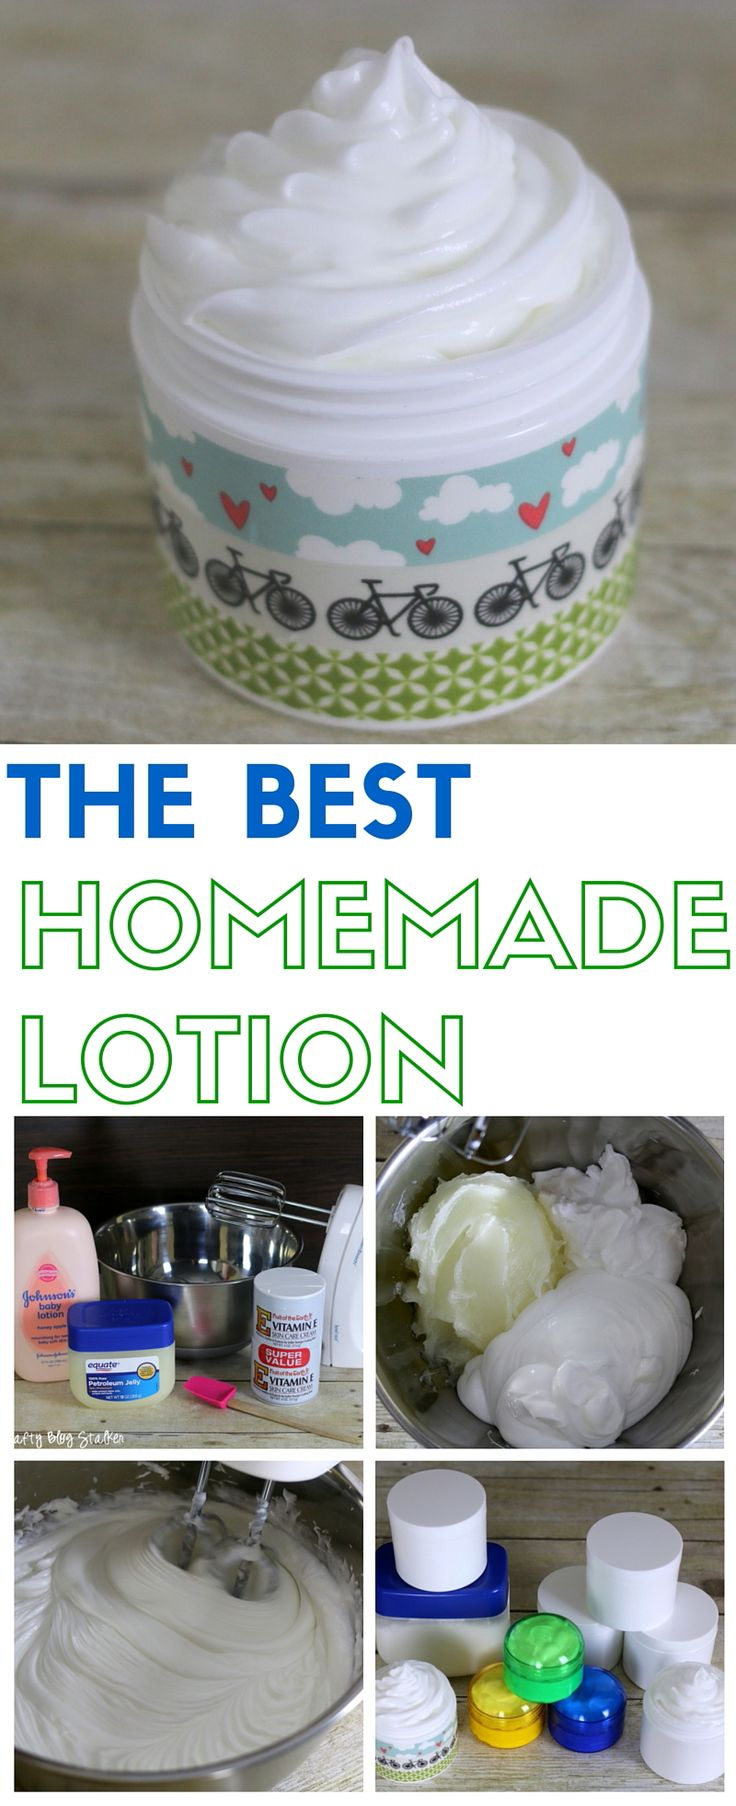 Homemade lotion is easier to make than you may think. This moisturizer makes my skin so soft and eliminates dry, flaky skin and recipe is easy to follow. A simple DIY beauty idea. Handmade Gifts